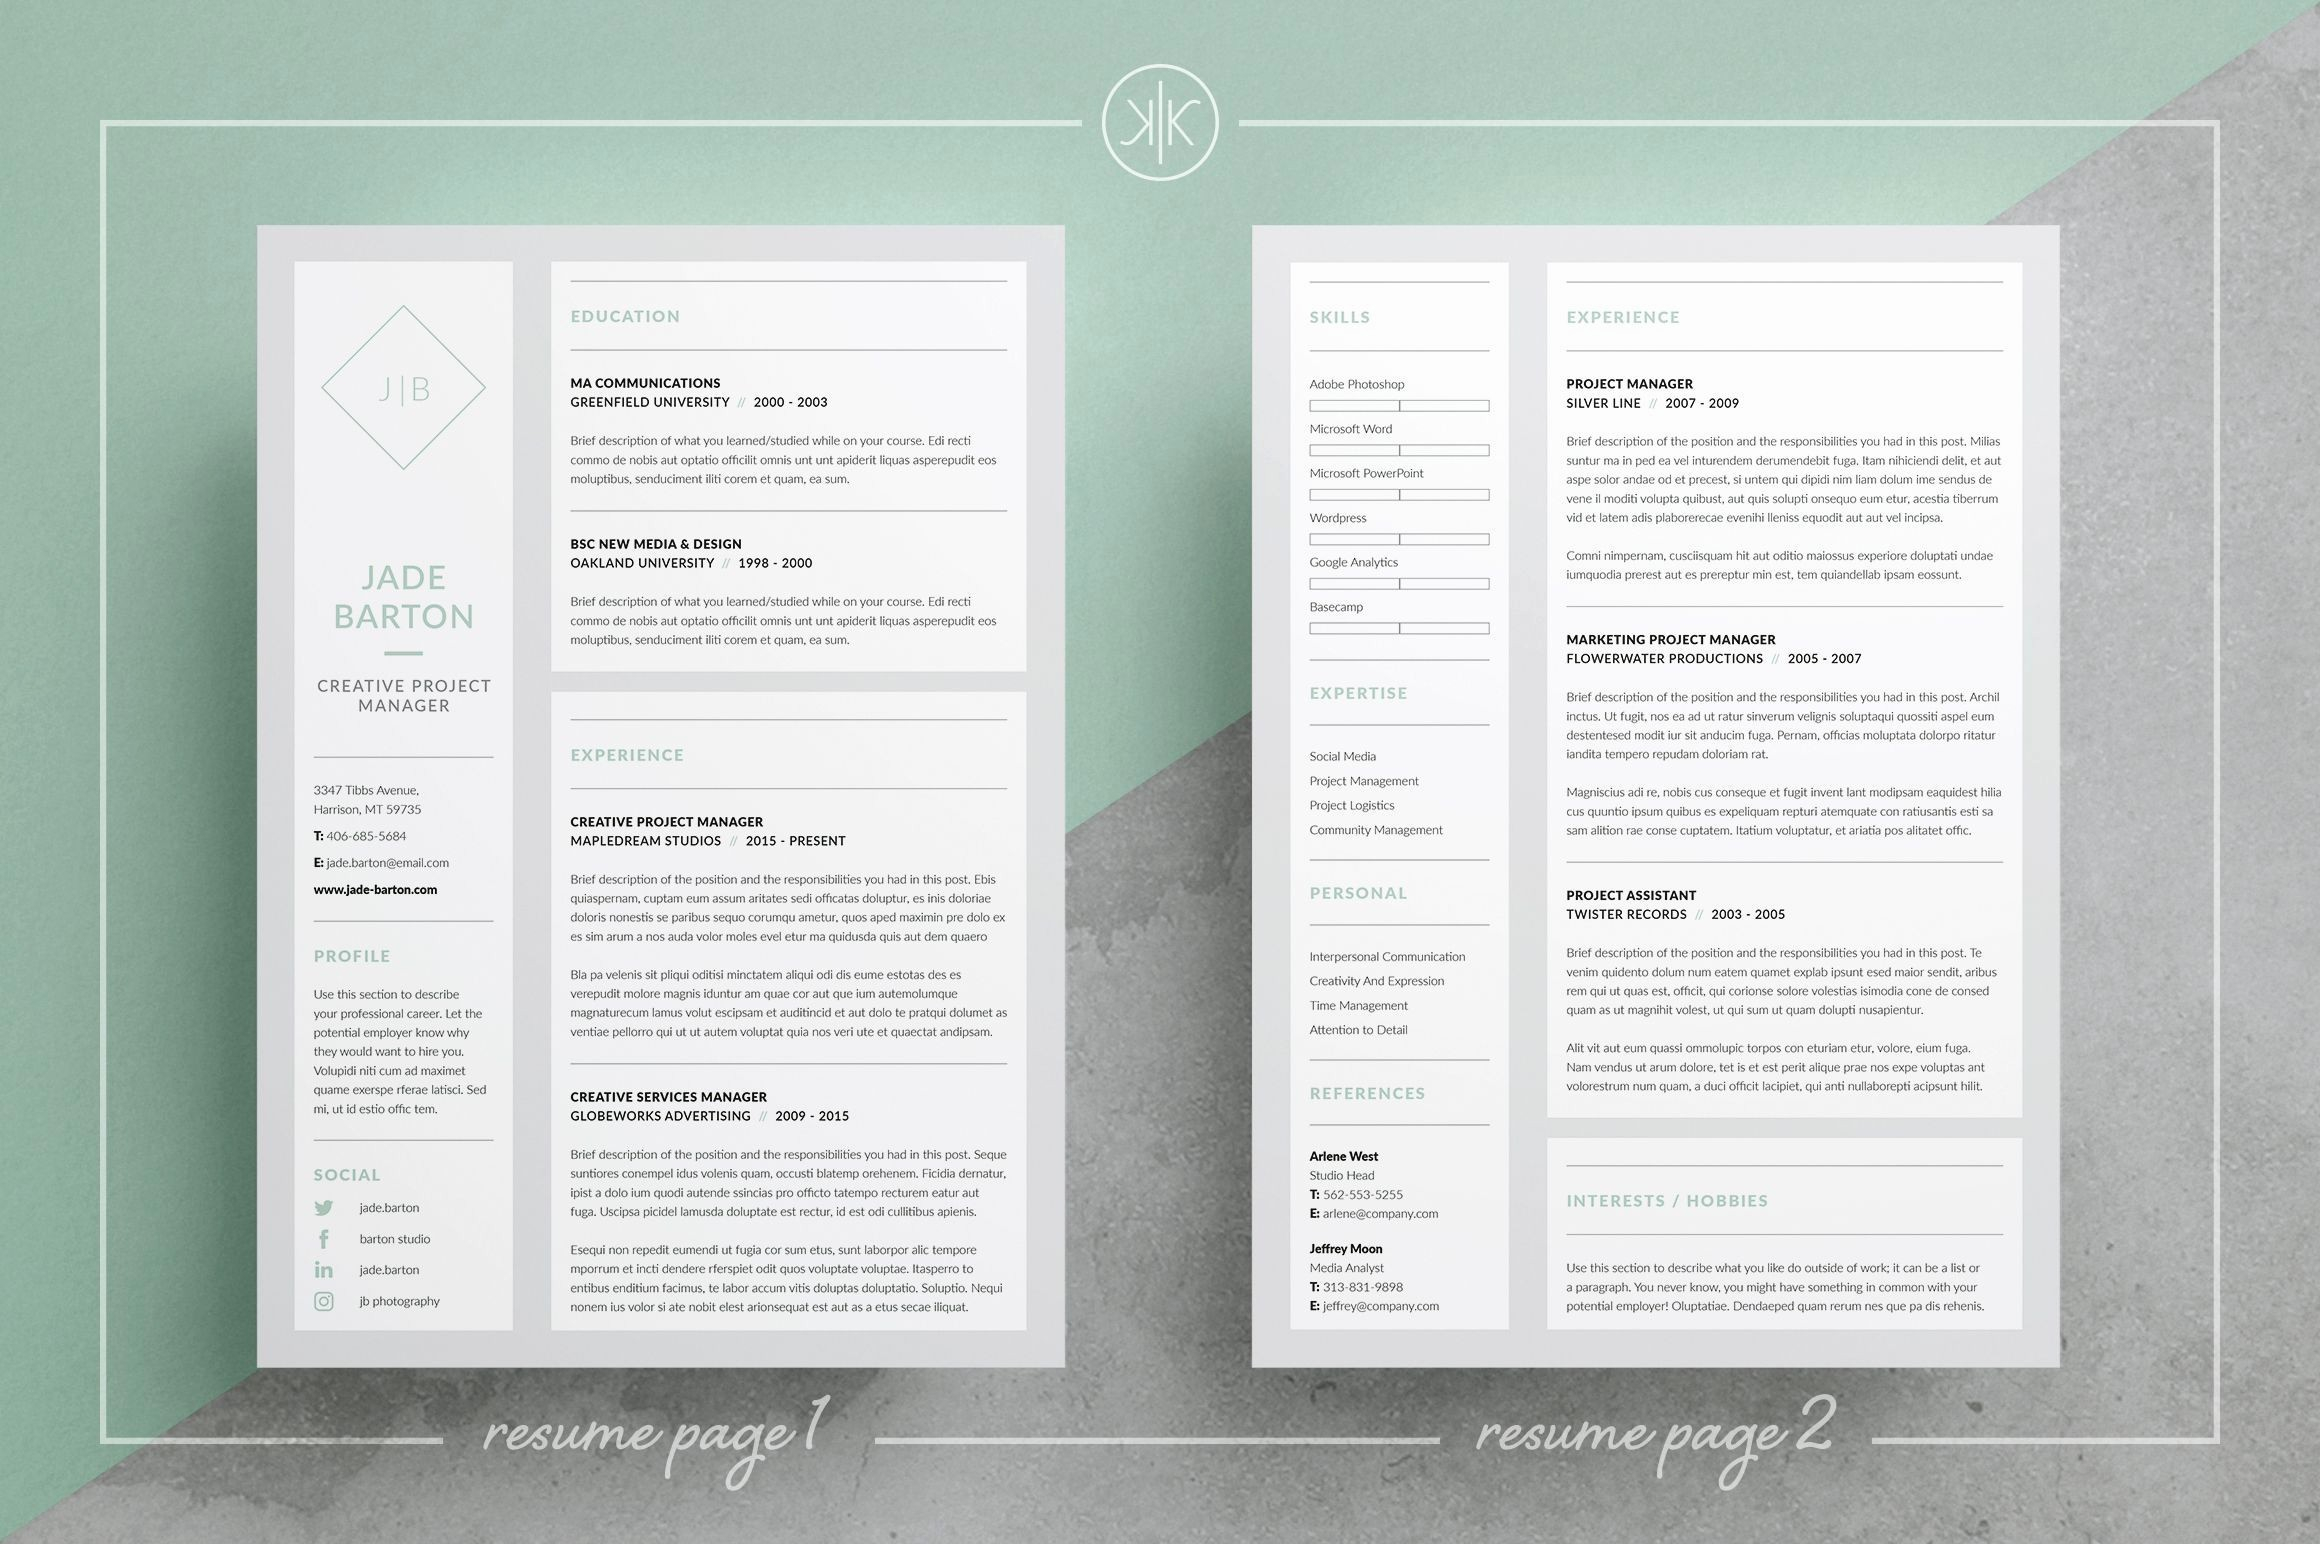 Best Resume Builders - My Resume Builder Inspirational Awesome Best Resume Maker Awesome